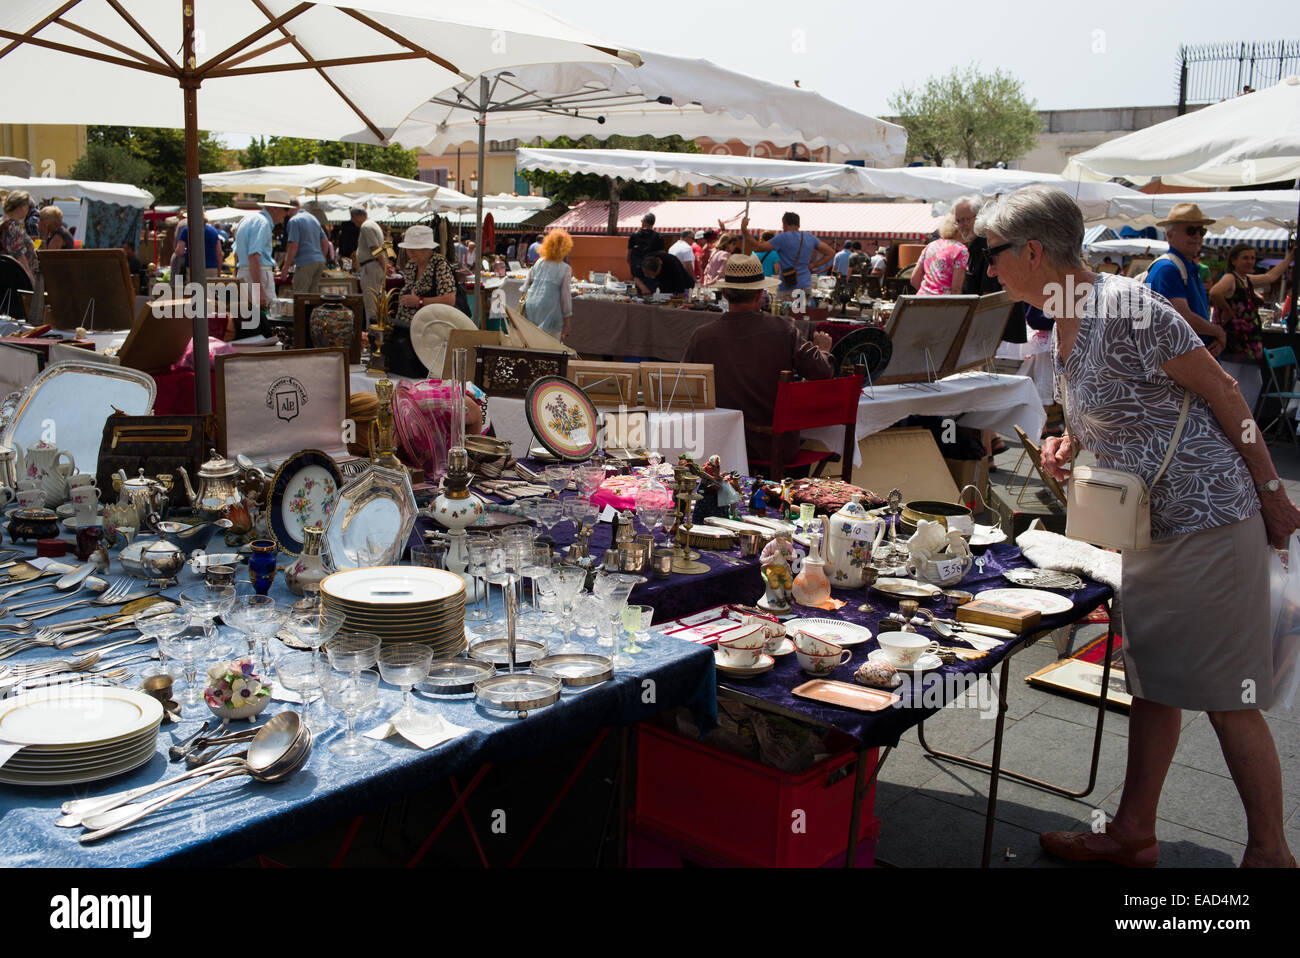 Brocante Cours De Vincennes People Shopping Brocante France Stock Photos People Shopping